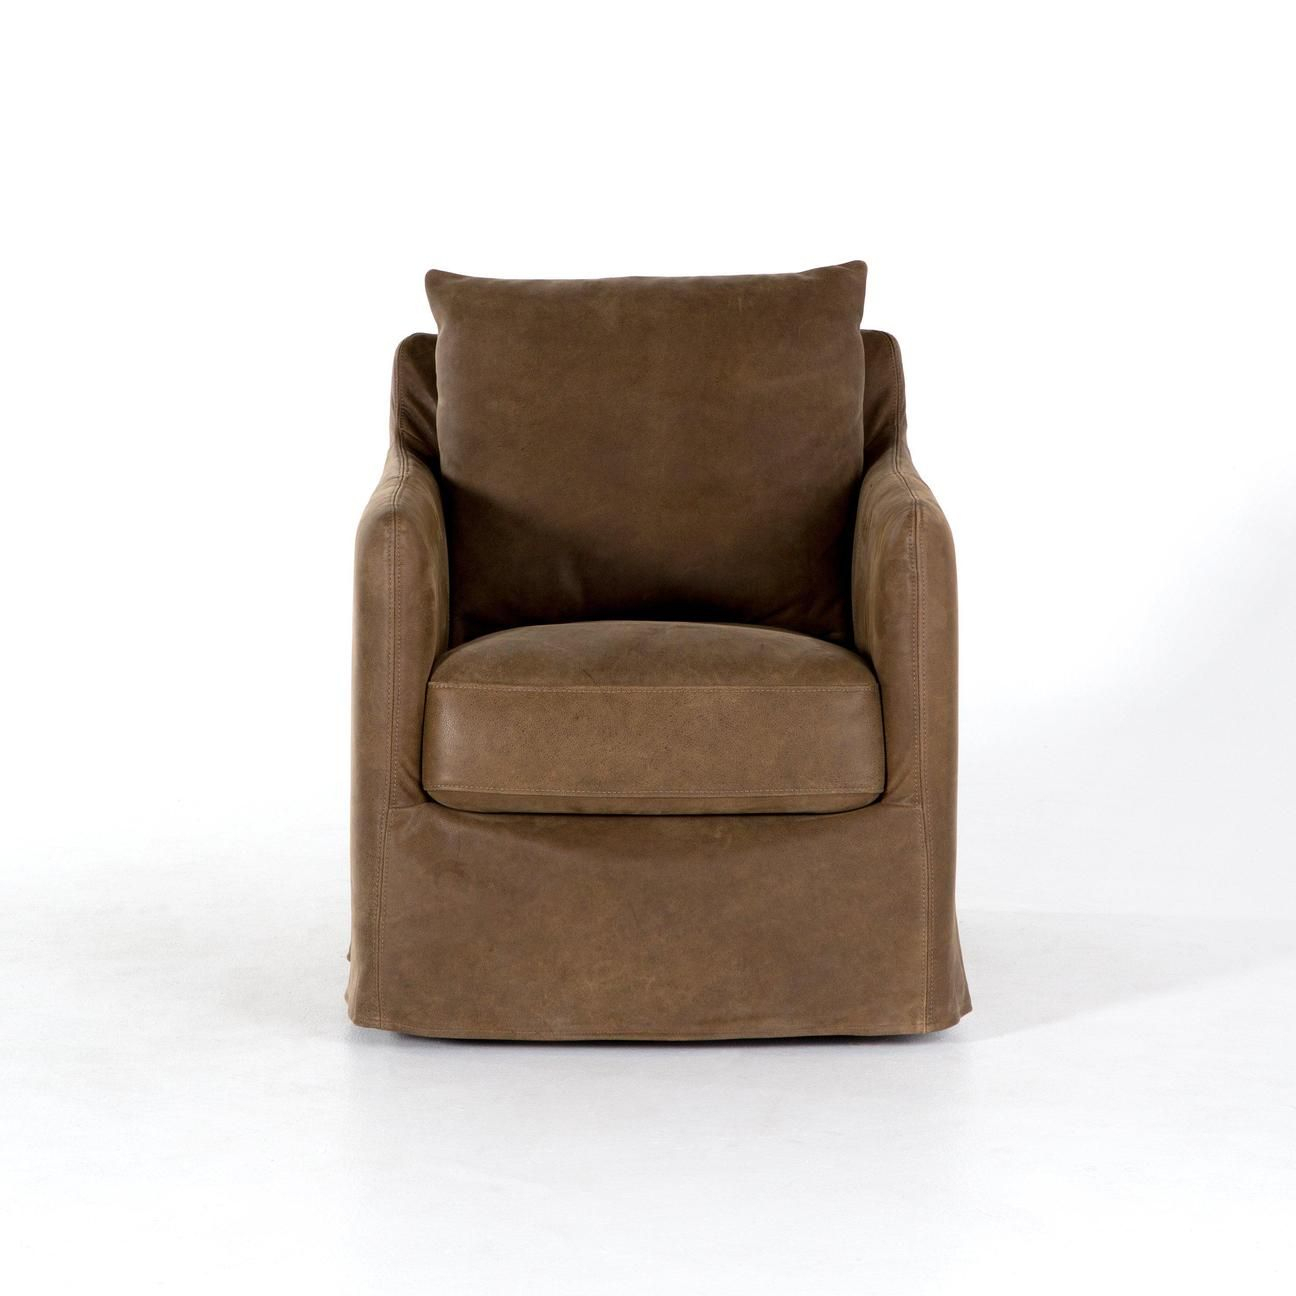 Kensington Collection Banks Top Grain Leather Swivel Chair: Umber Inside Umber Grey Swivel Accent Chairs (Image 12 of 20)